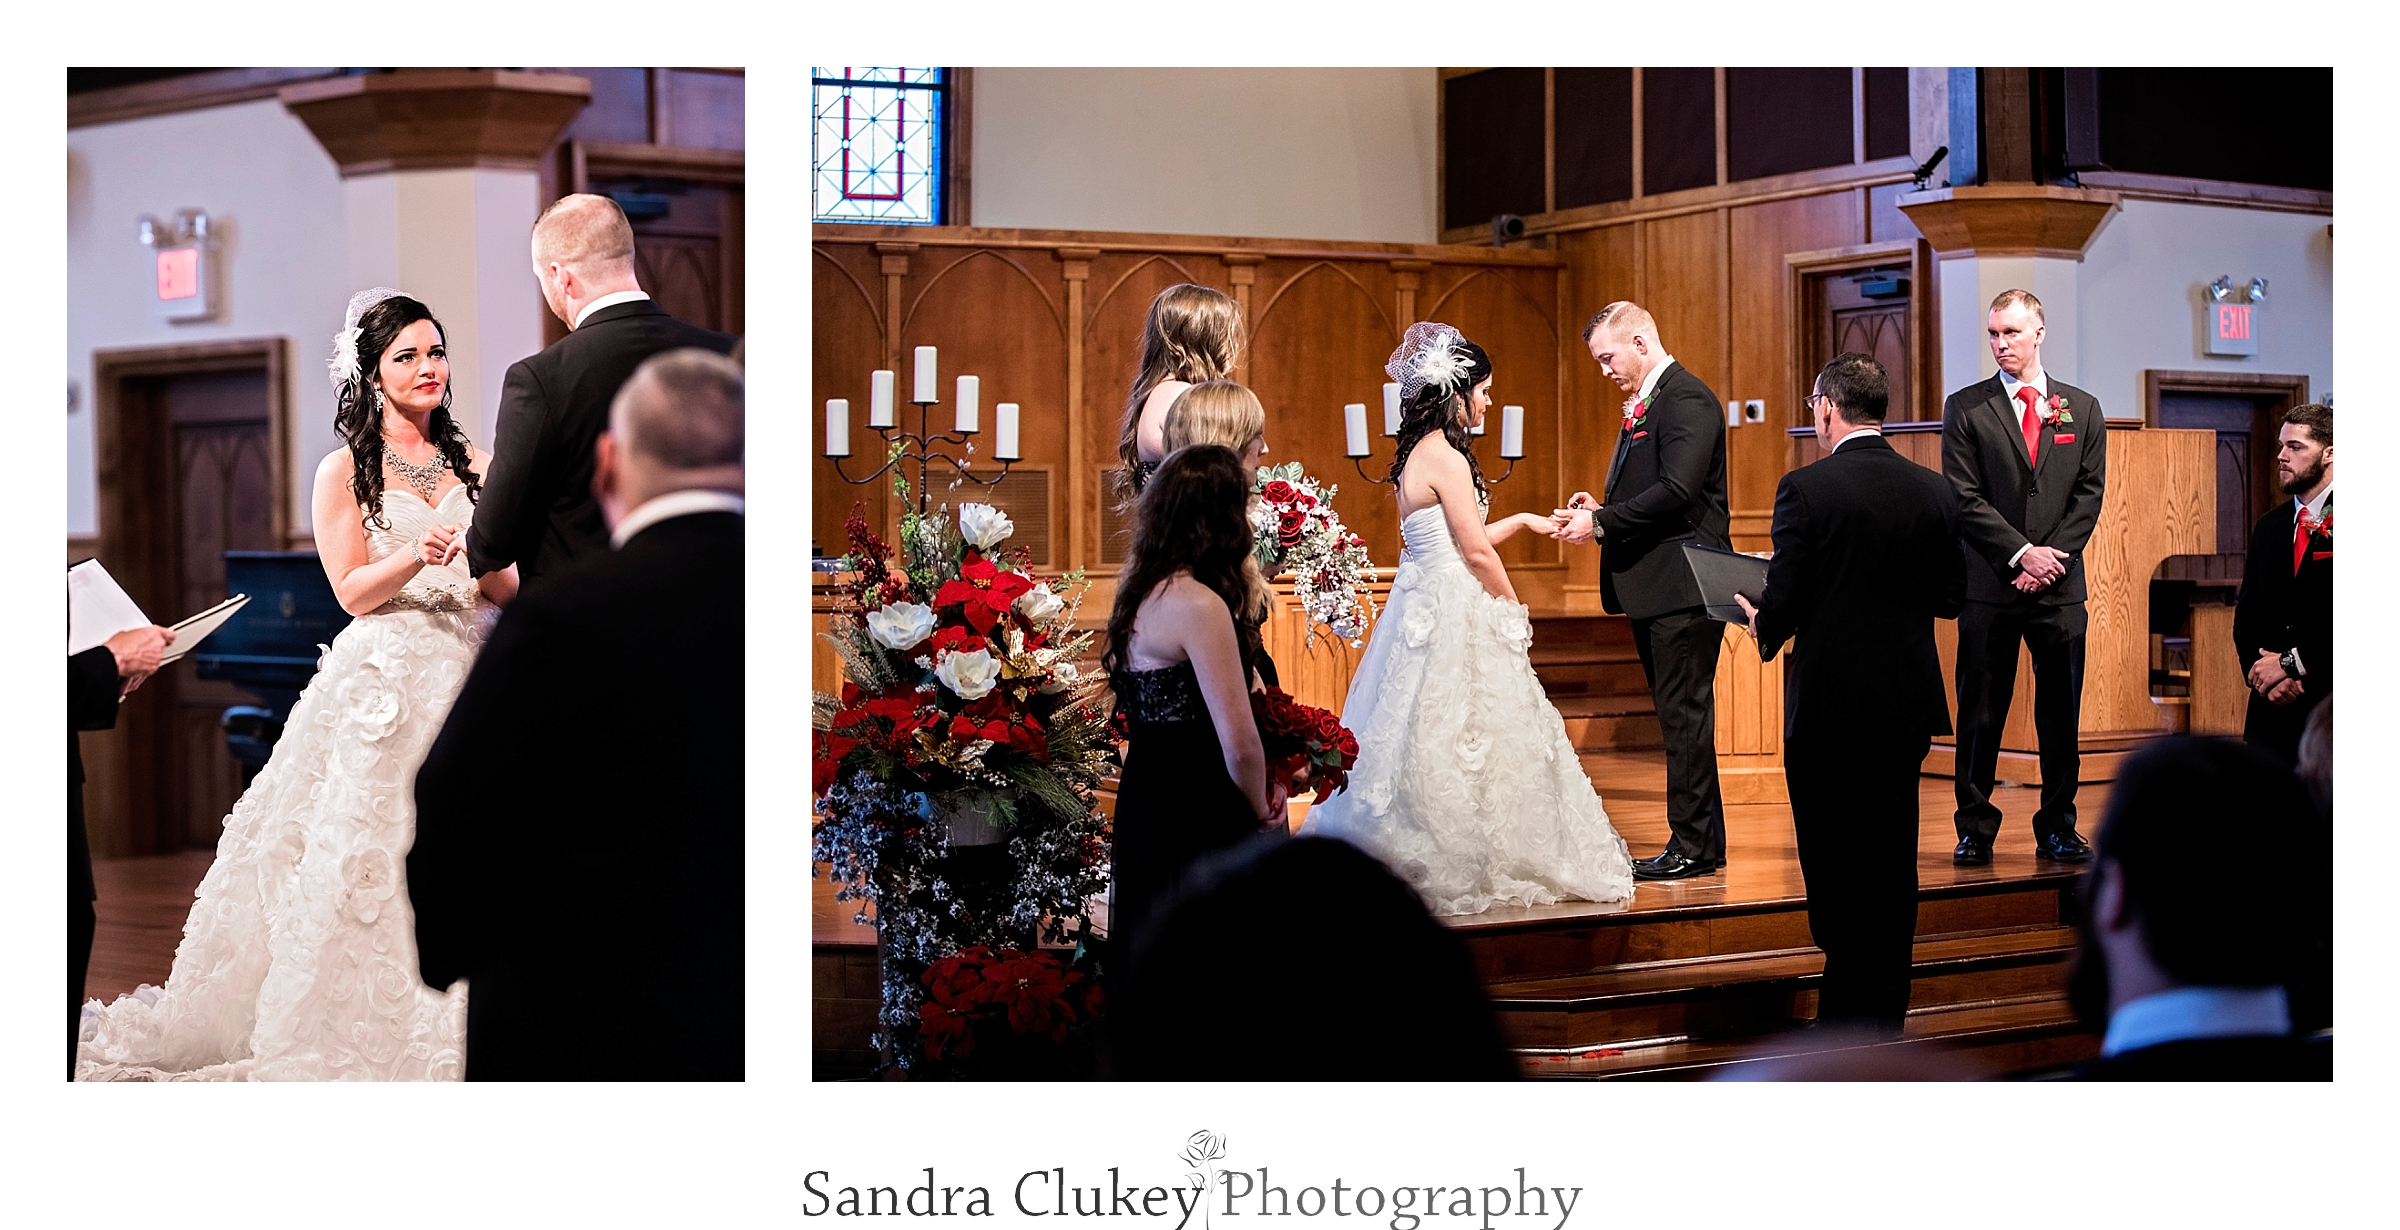 Rings Exchanged during Wedding at Lee University Chapel, Cleveland TN